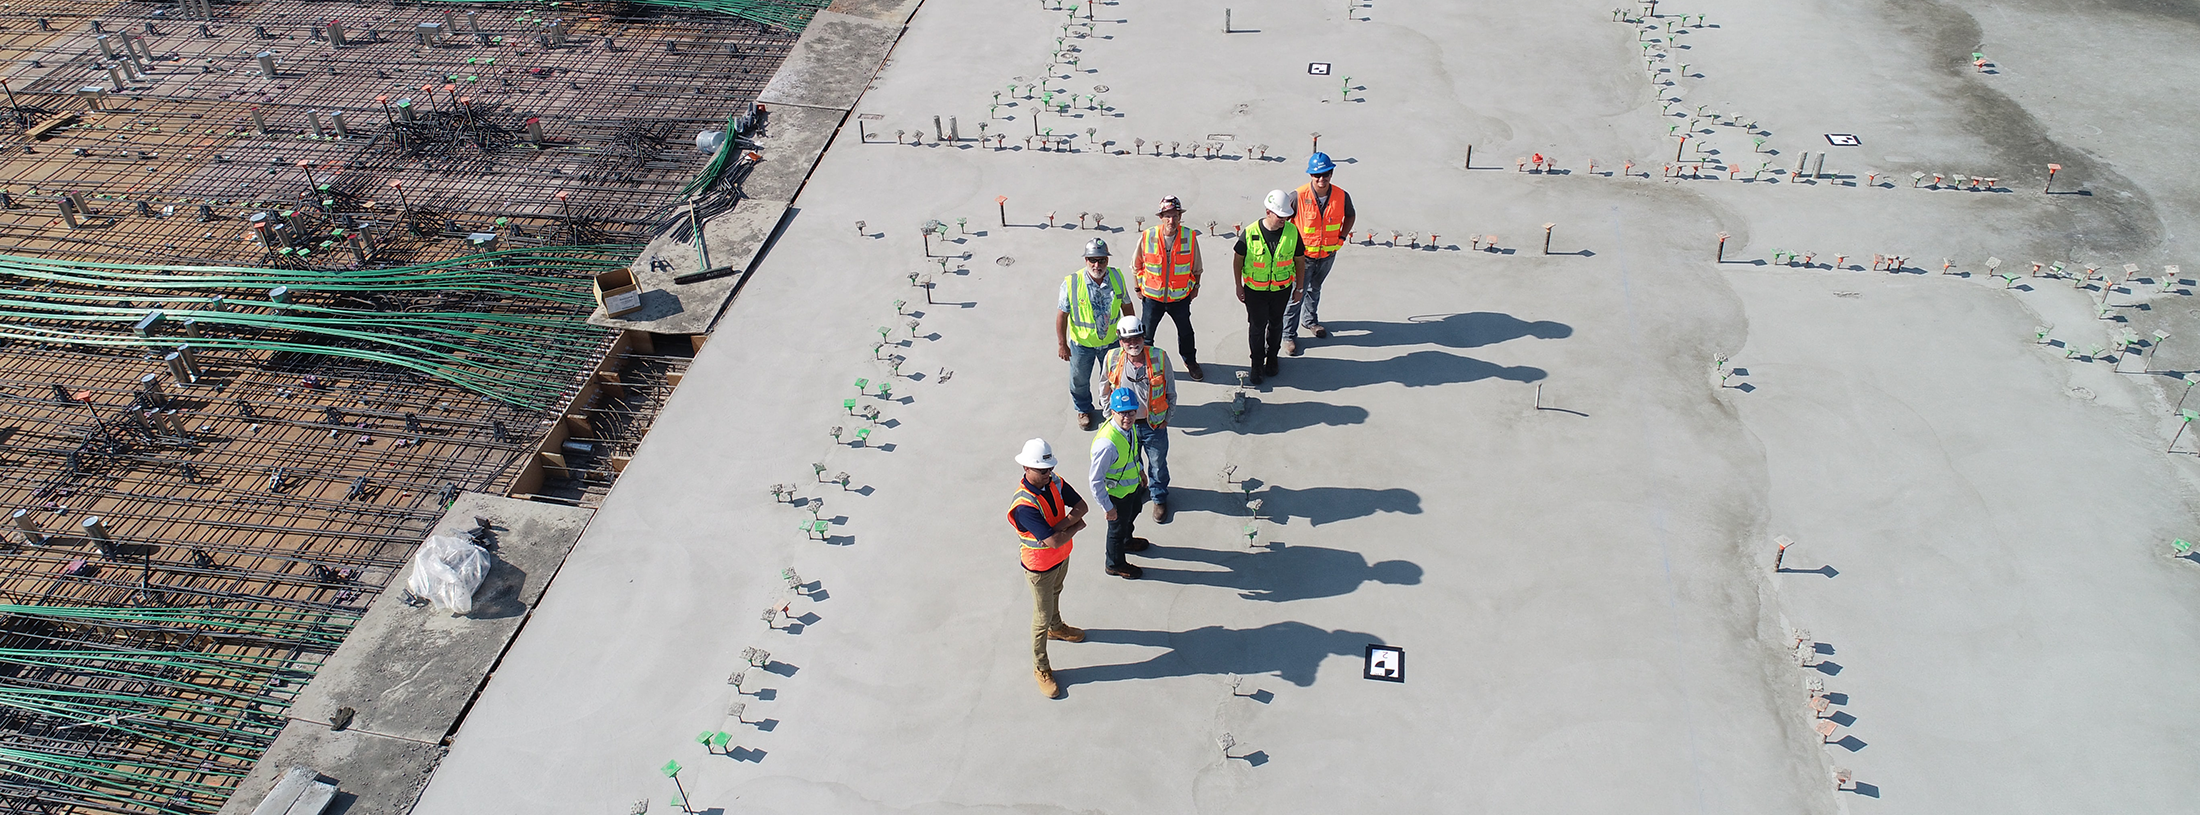 View from above of 7 men in safety vests and hardhats on a construction site.